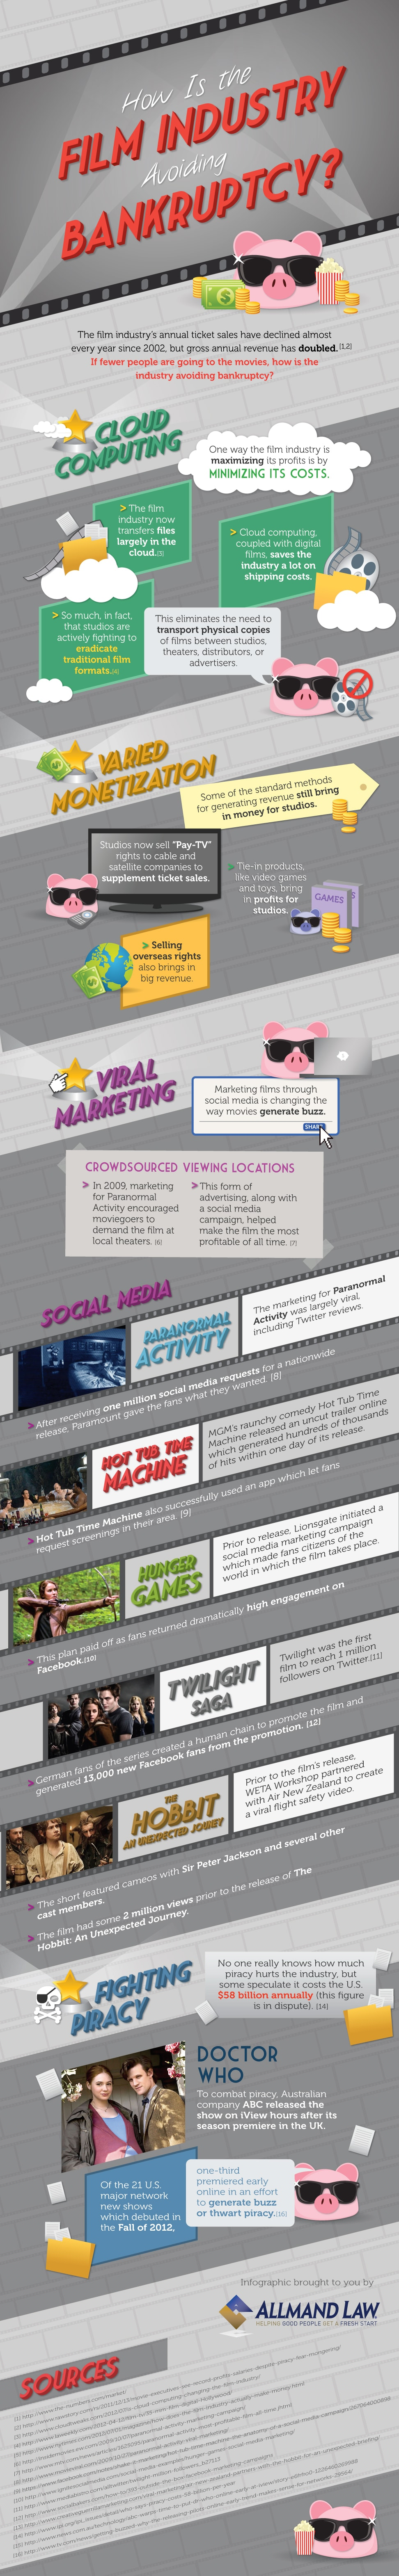 Film Industry Gets Creatively Social To Survive [Infographic]